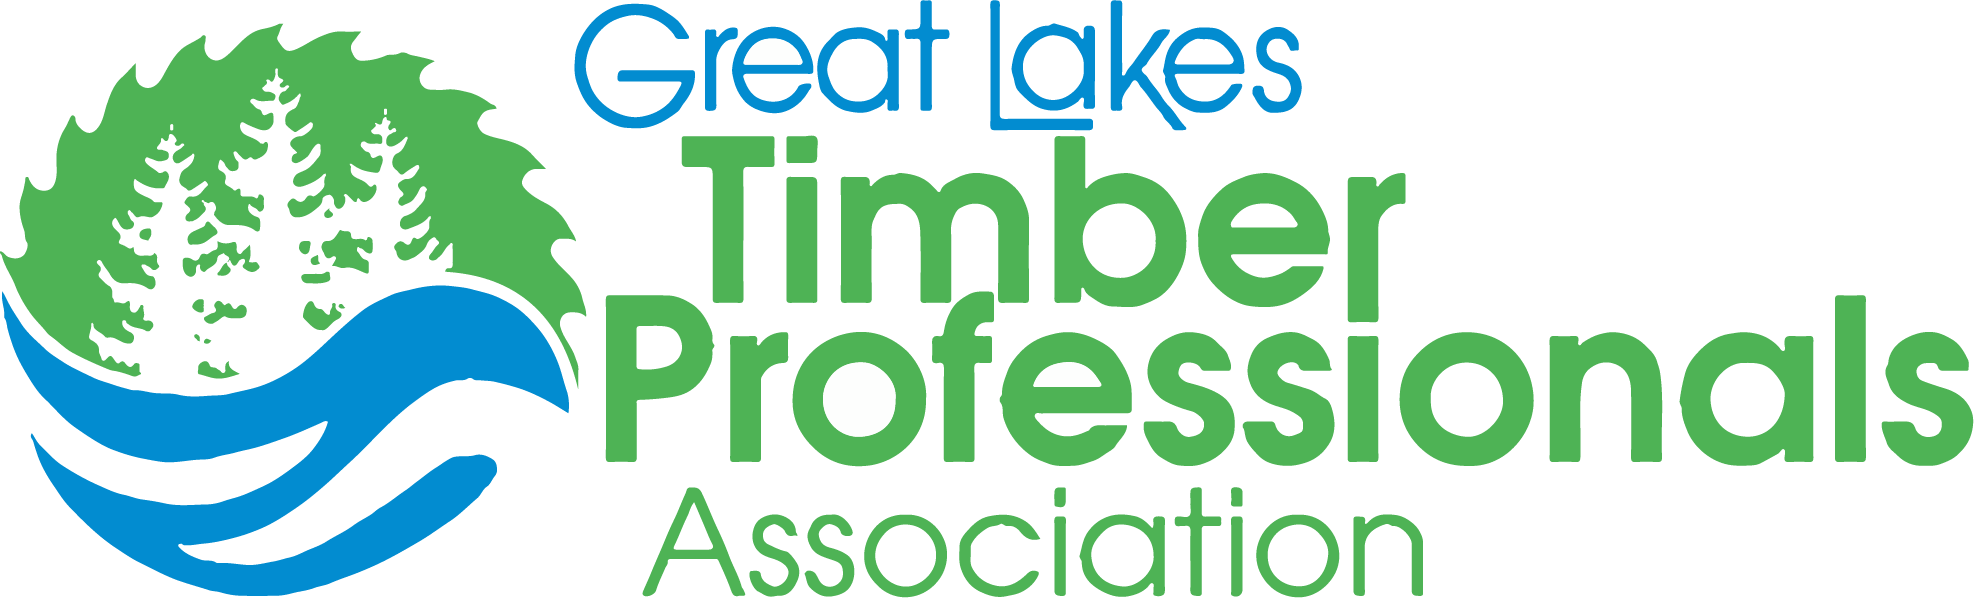 The Great Lakes Timber Professionals Association, a non